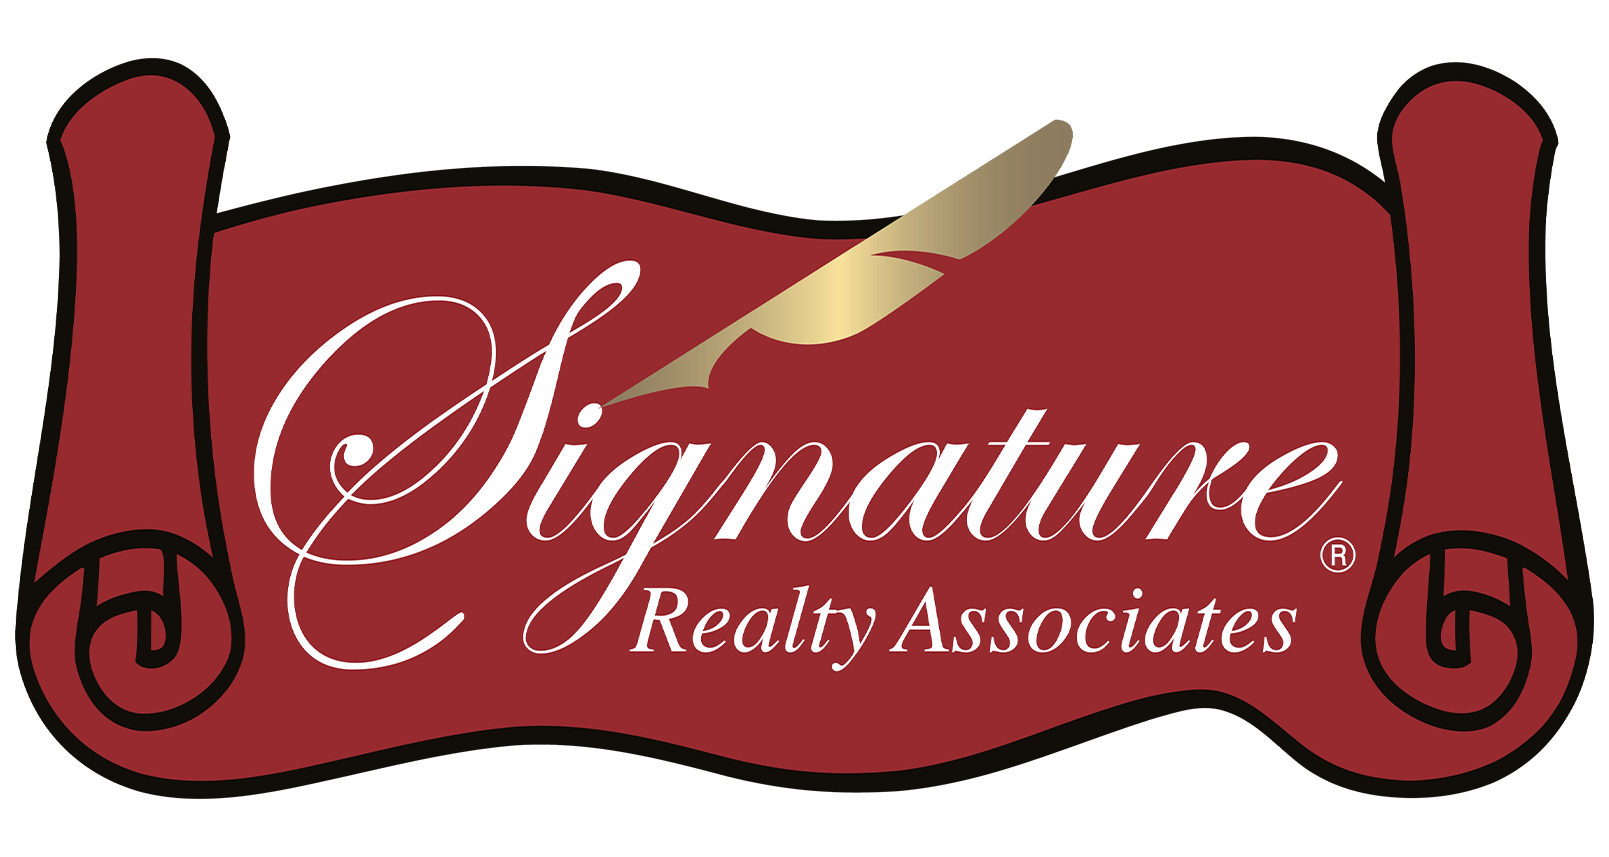 - Untitled 1 - Signature Realty Associates Landing Page 1